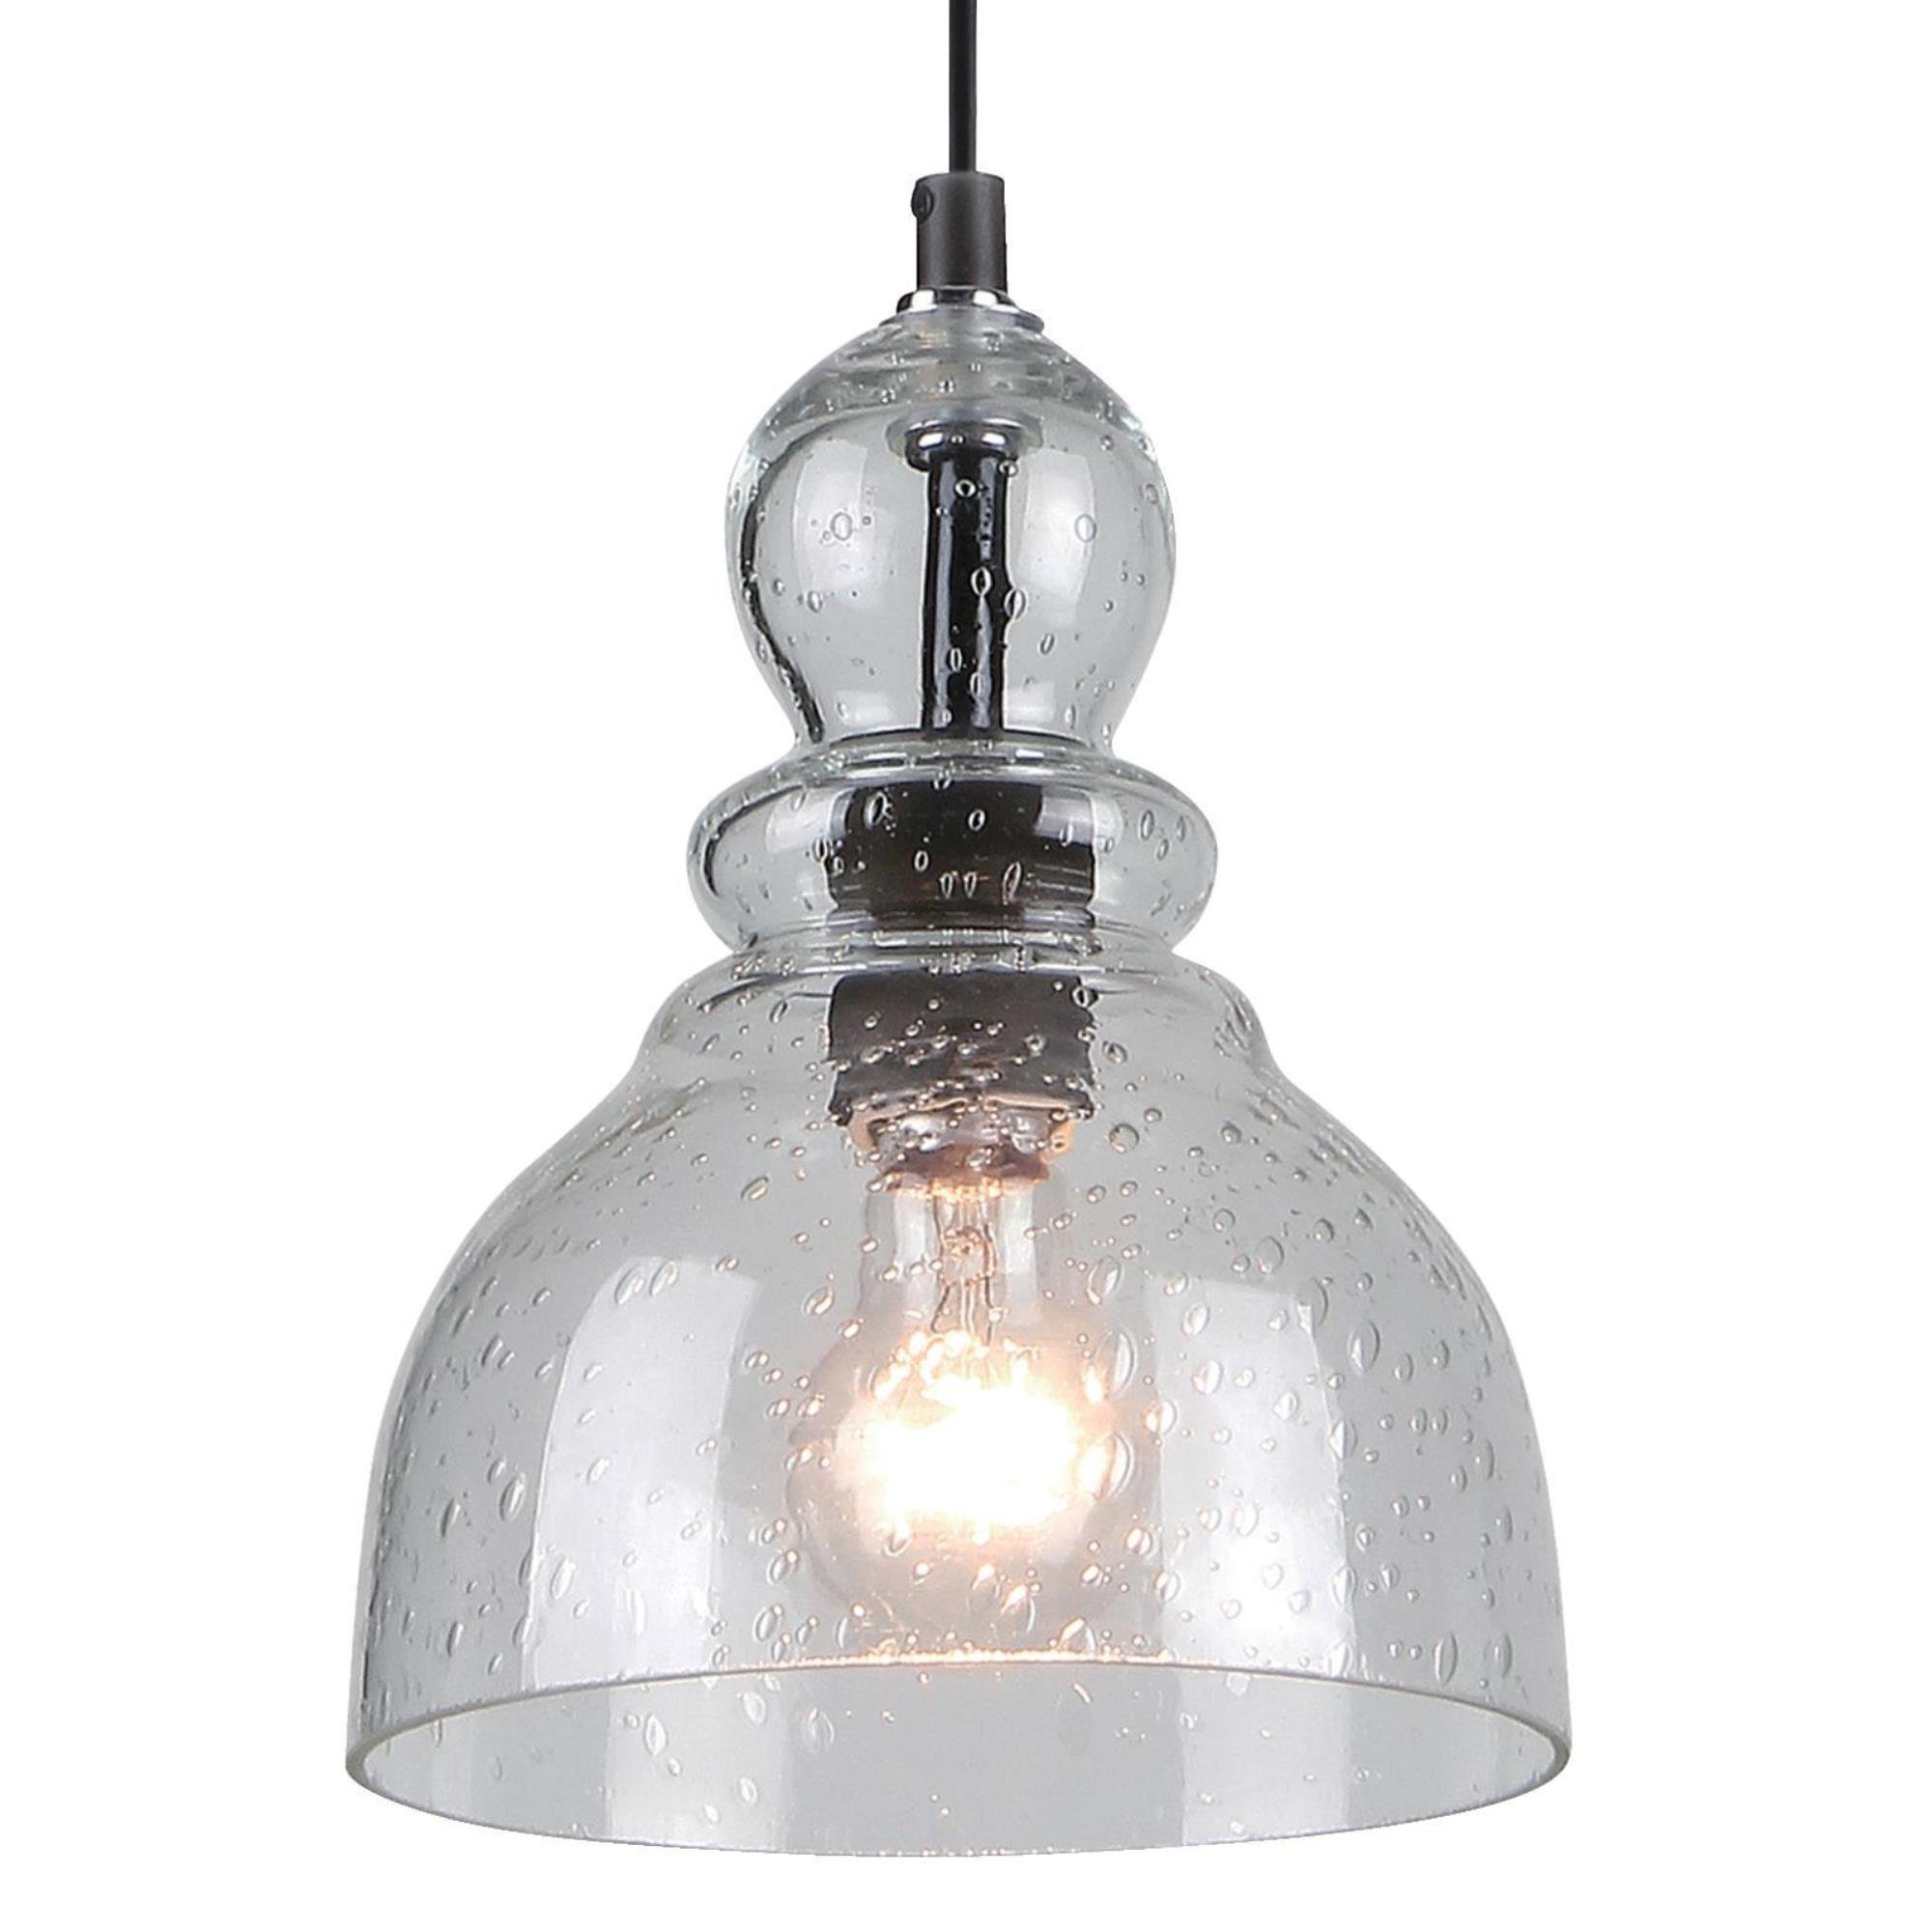 Westinghouse 6100800 One-Light Indoor Mini Pendant, Oil Rubbed Bronze Finish with Clear Seeded Glass by Westinghouse Lighting (Image #3)